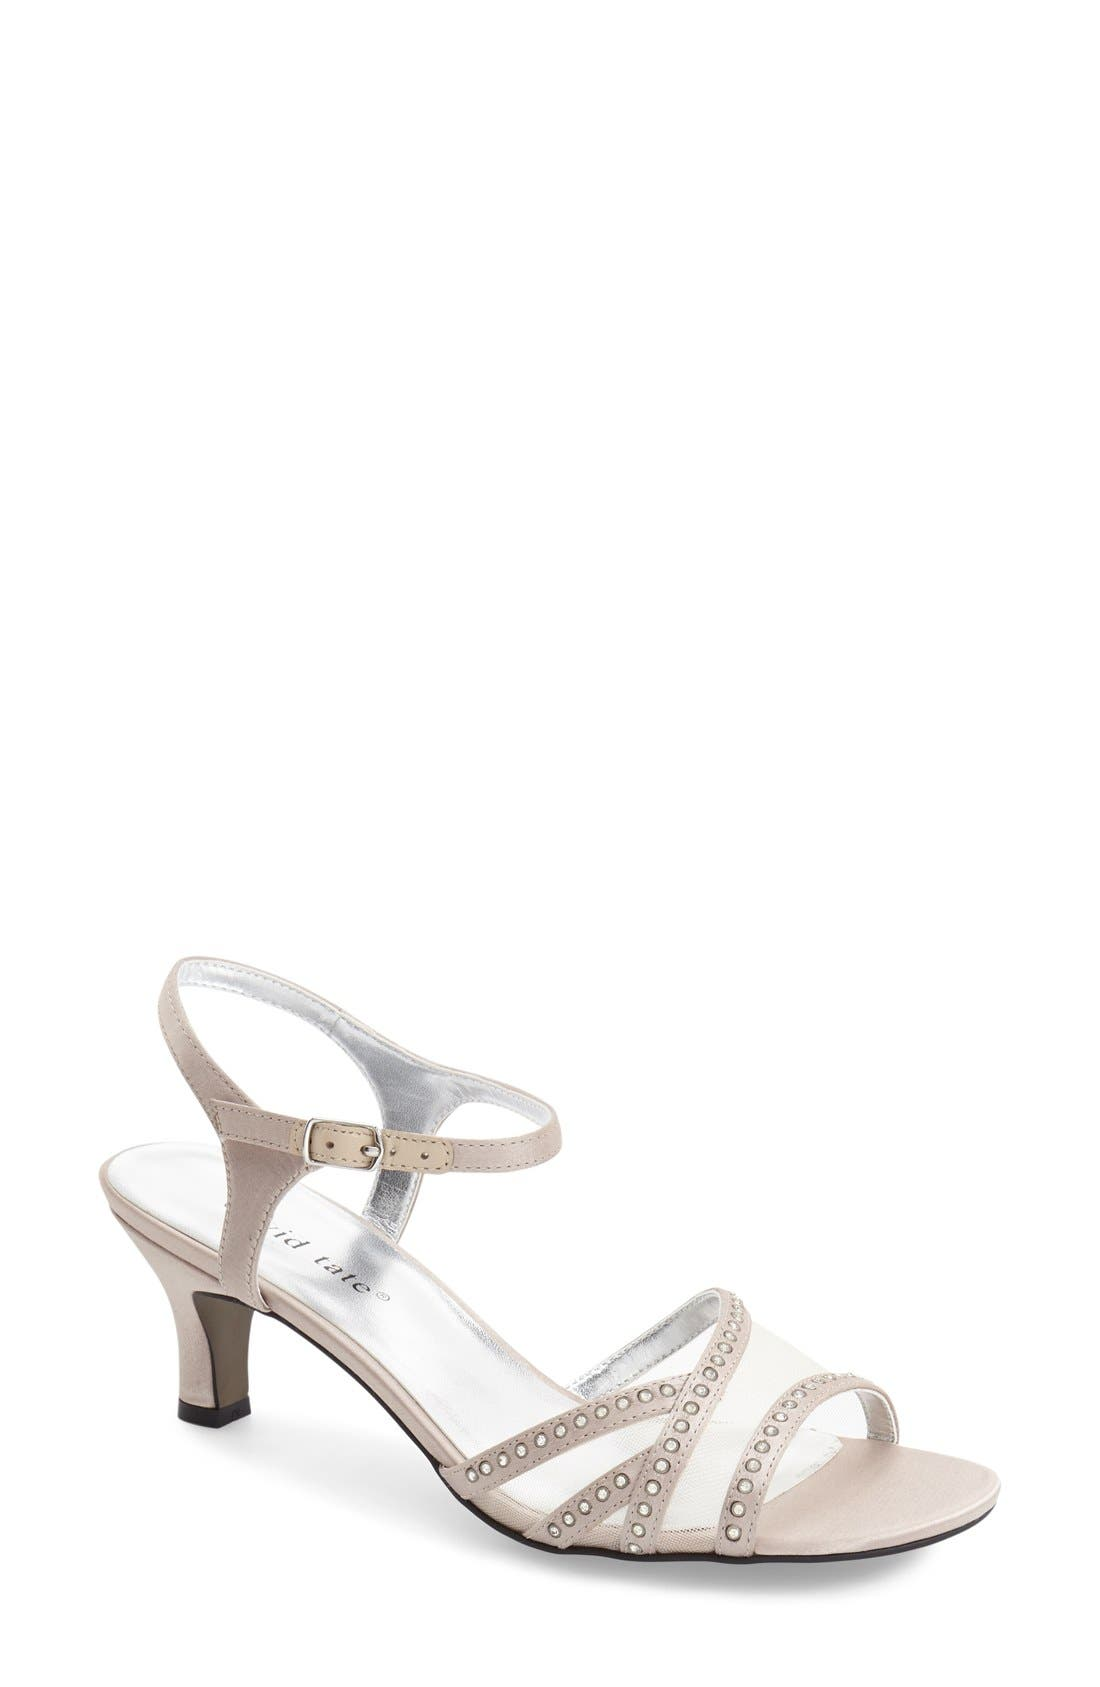 'Violet - Night Out' Sandal,                         Main,                         color, CHAMPAGNE SATIN